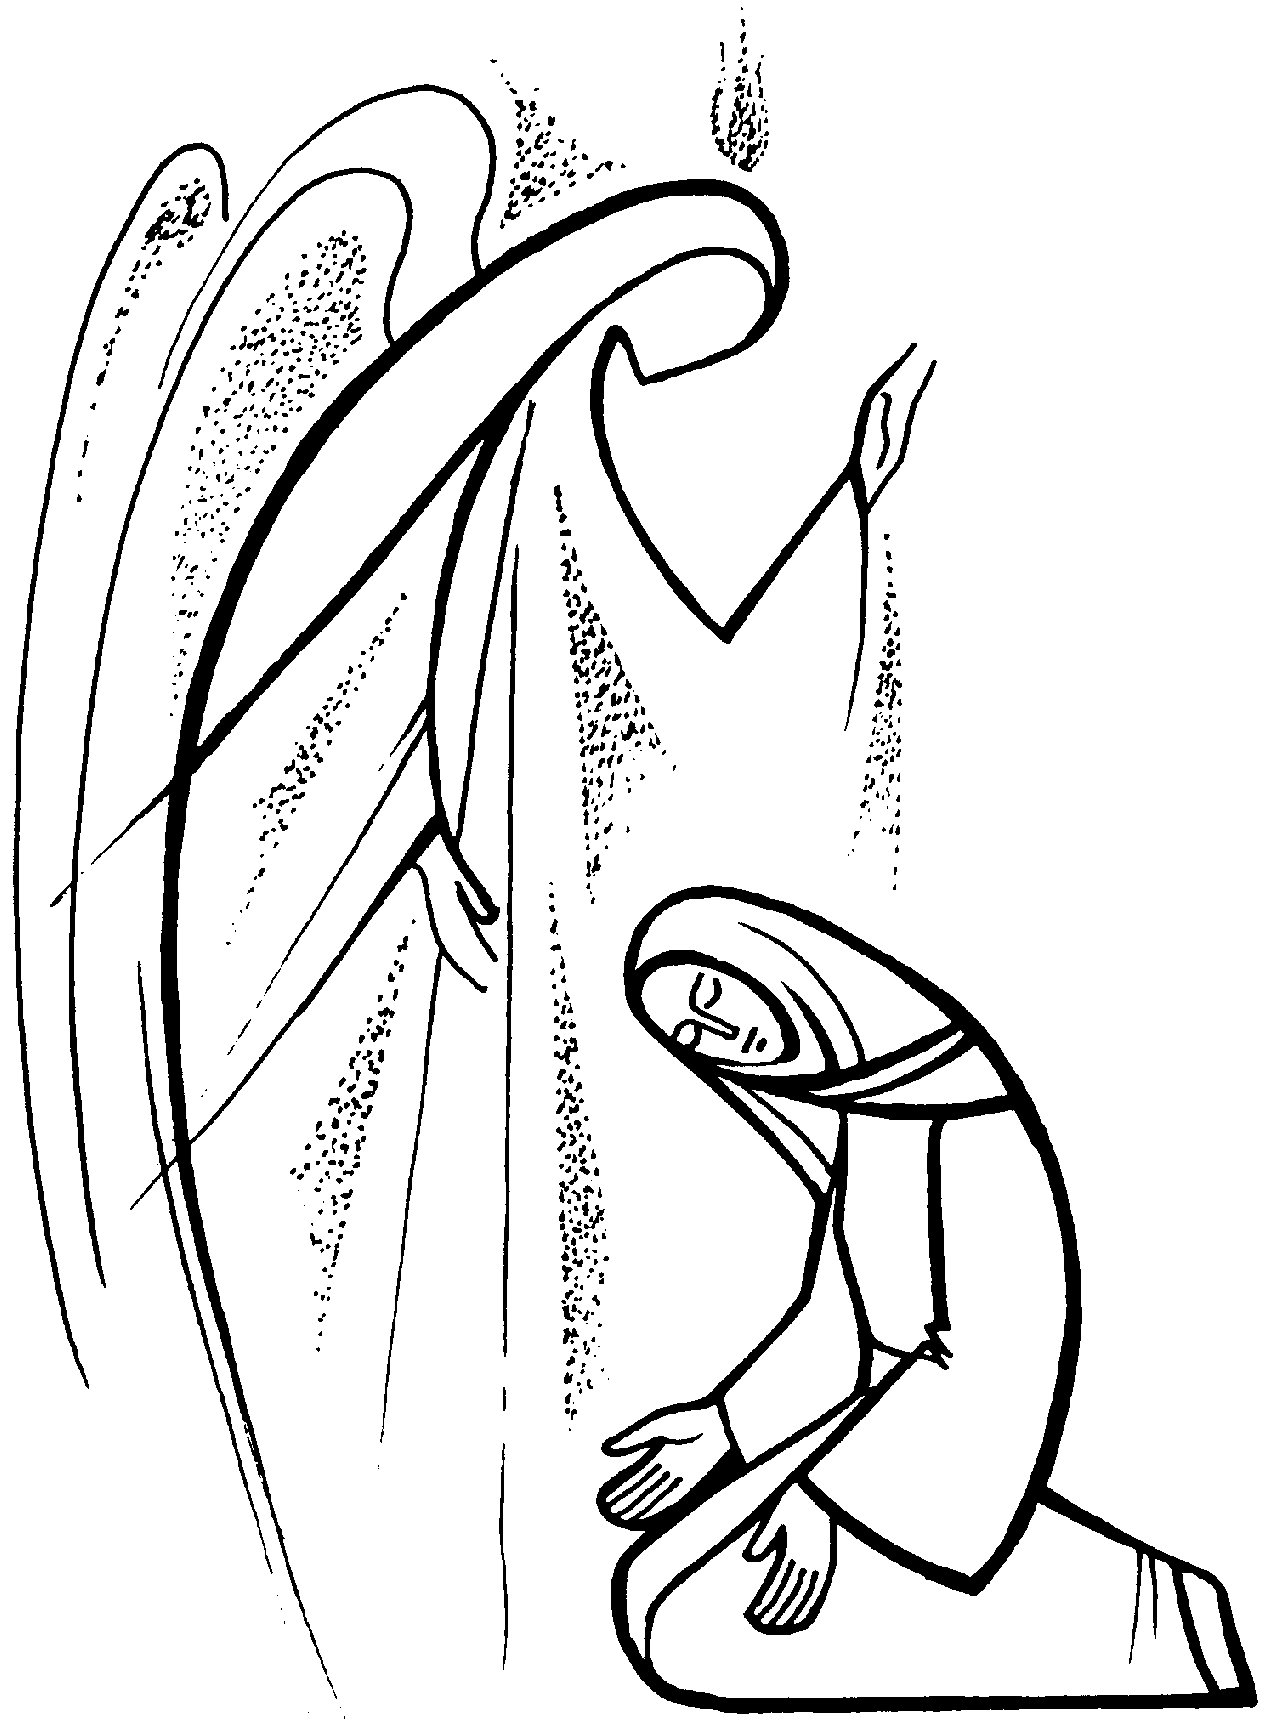 The annunciation clipart jpg black and white library Annunciation Clipart Group with 68+ items jpg black and white library